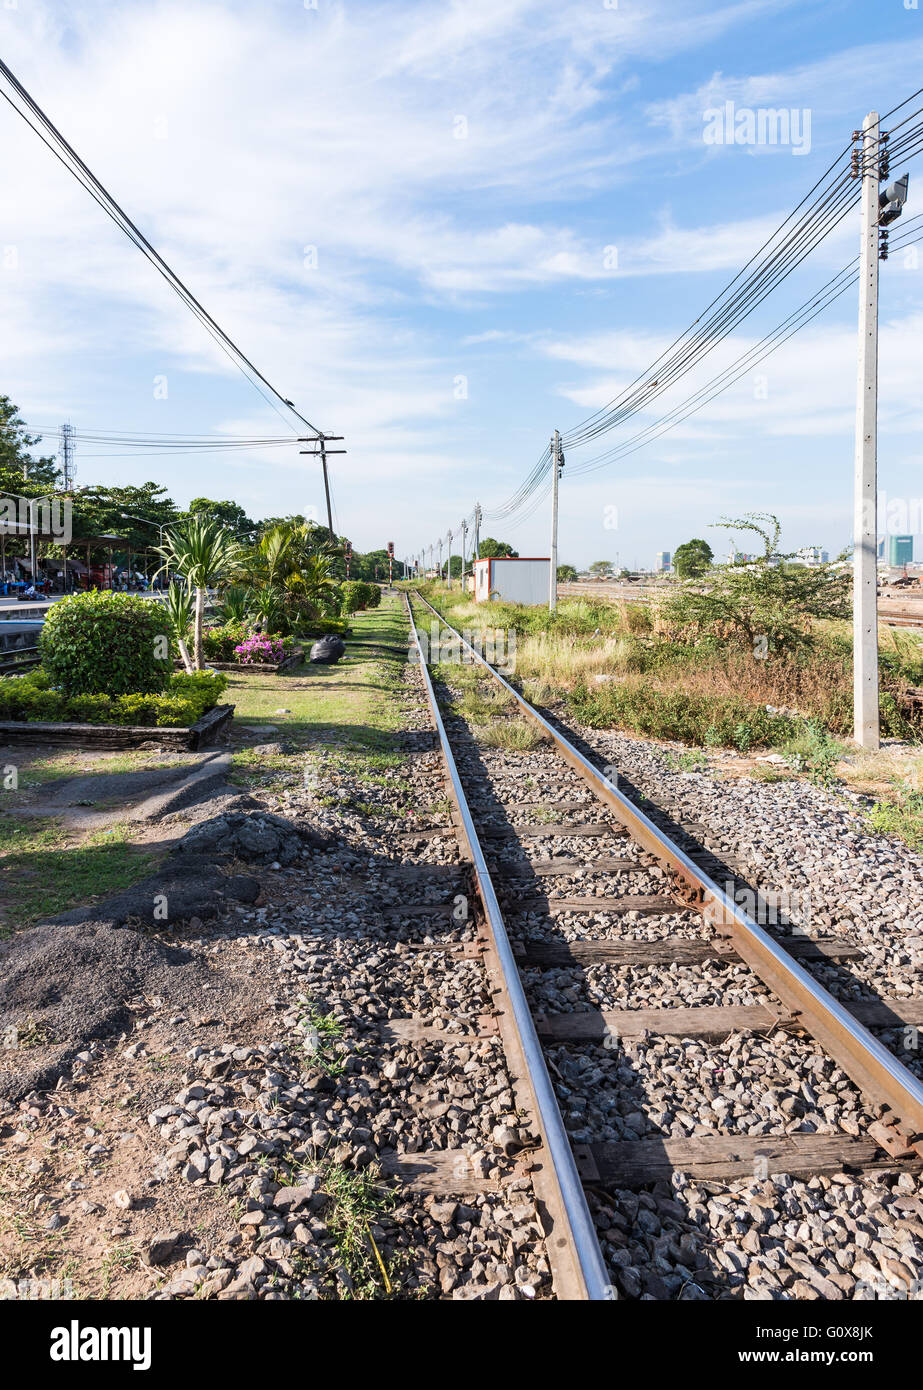 Straight railway line from the junction of urban station. - Stock Image